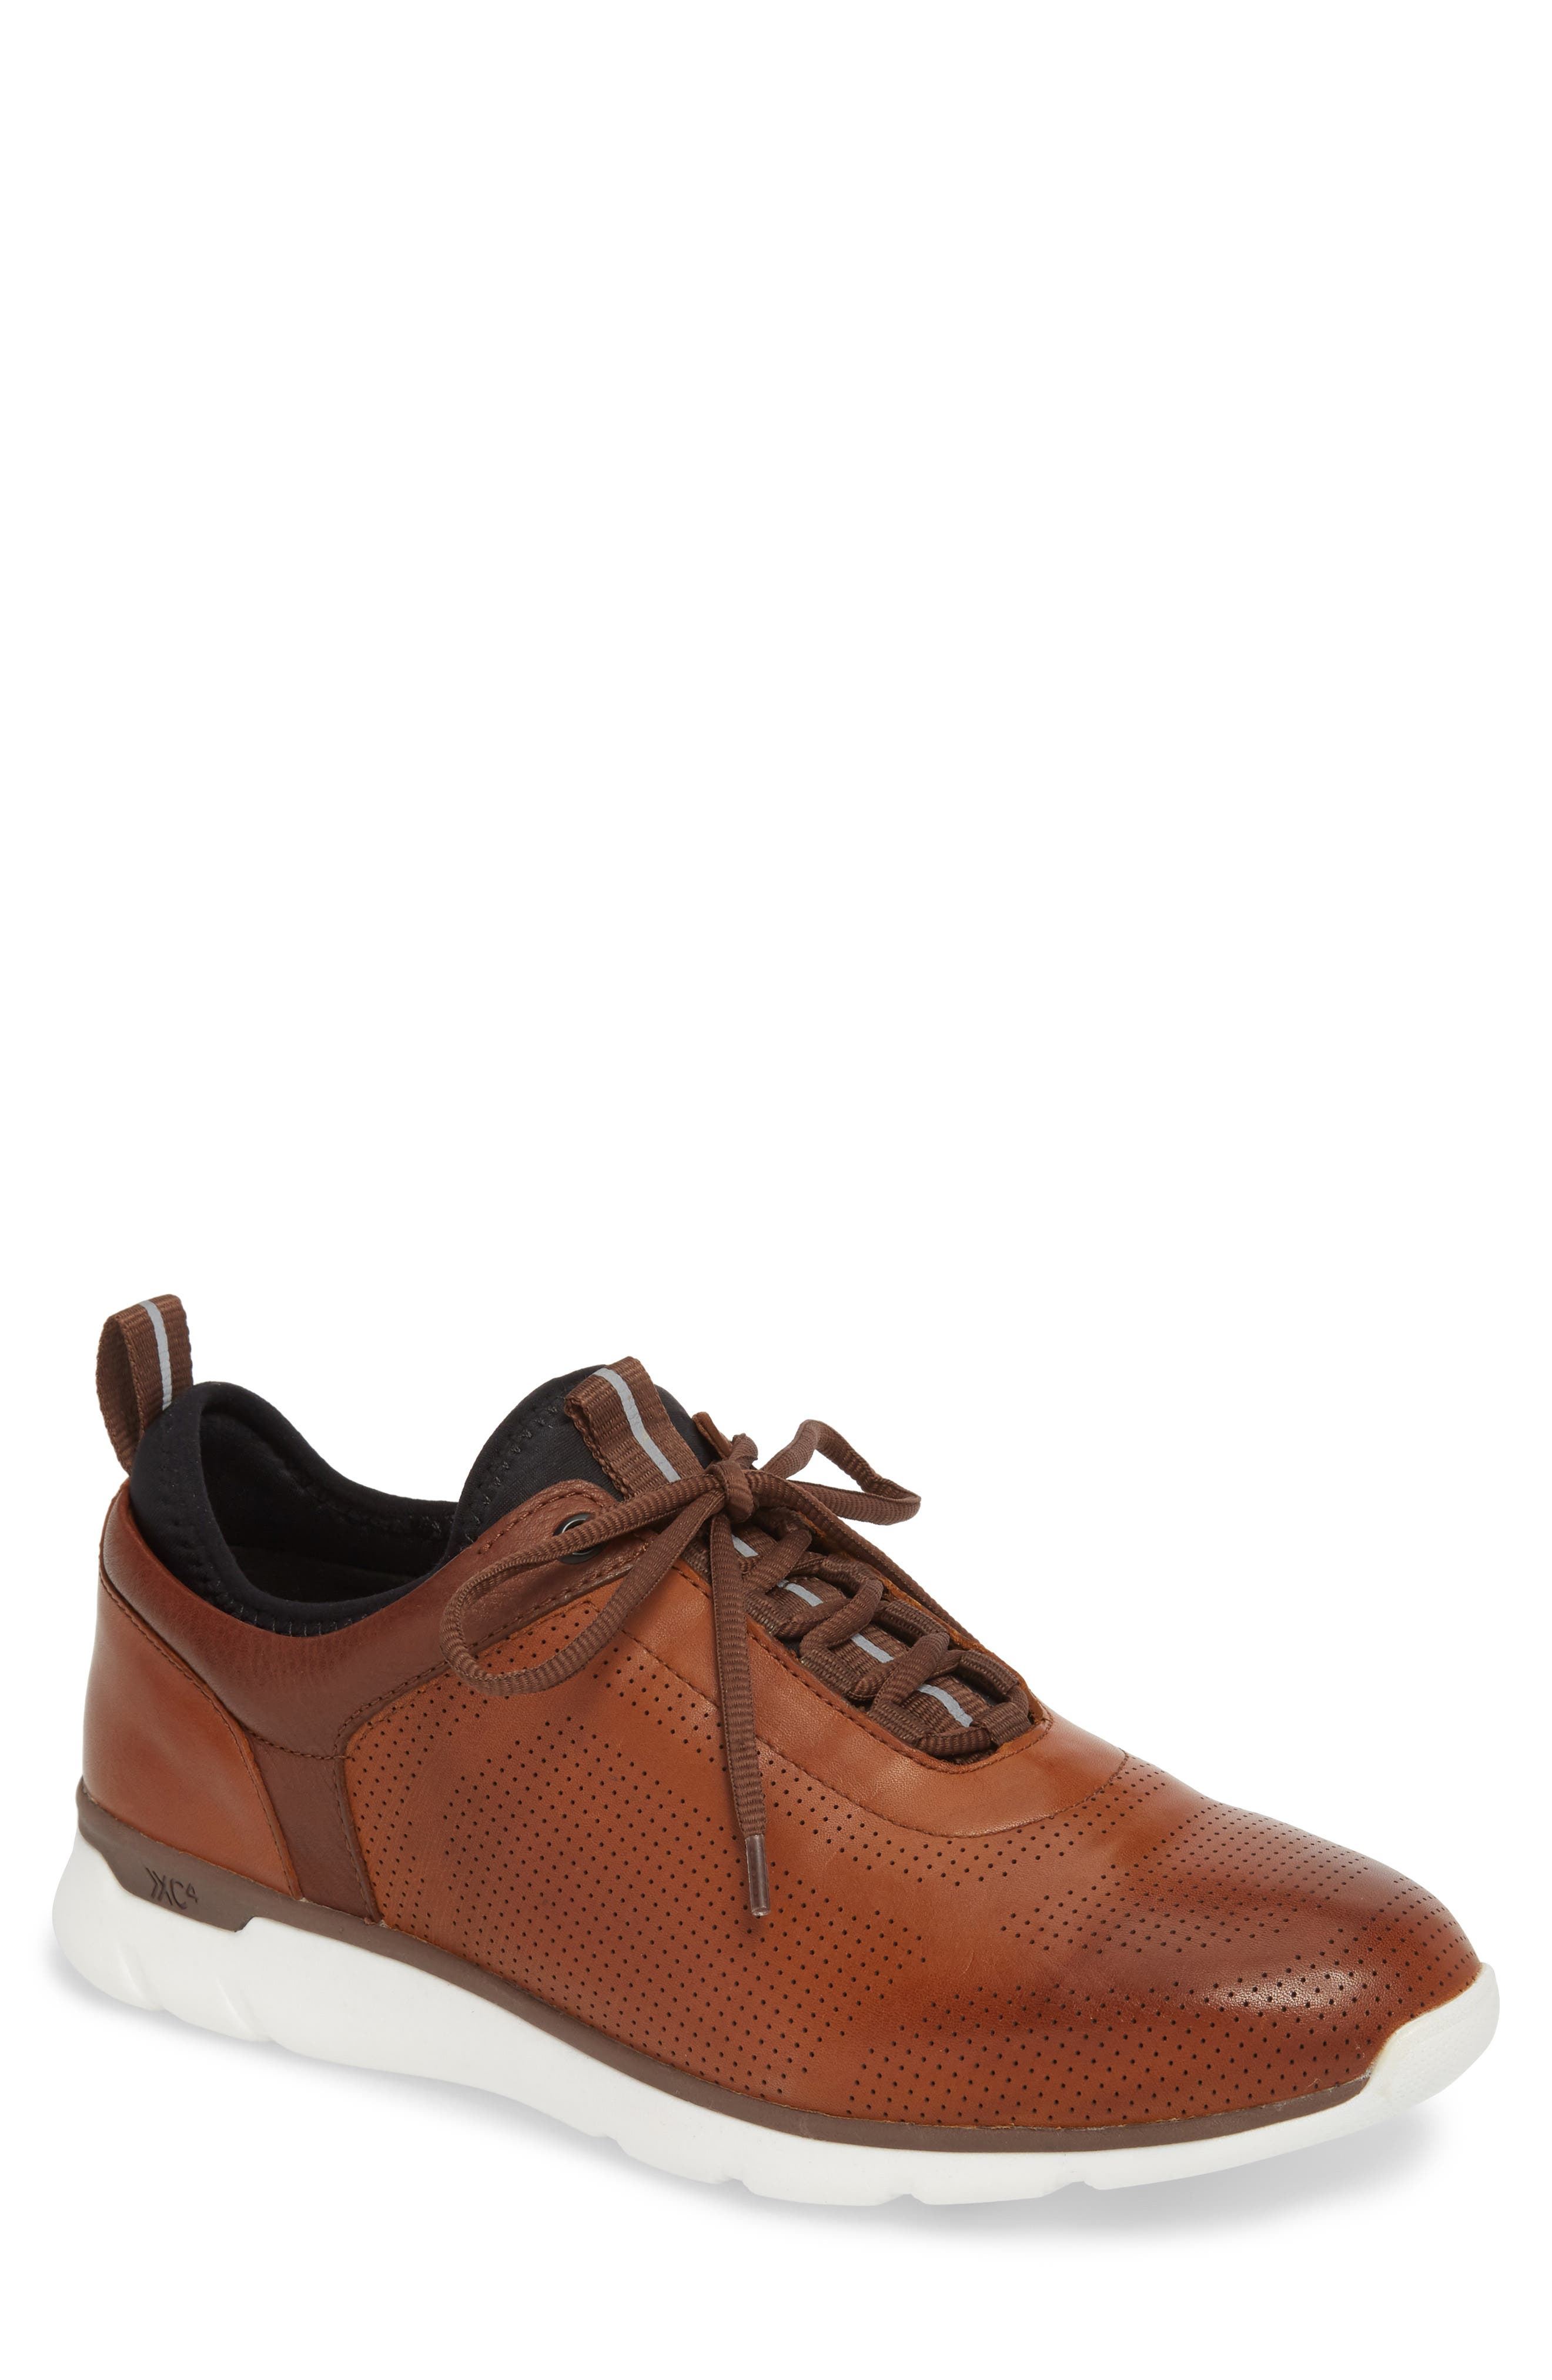 Prentiss XC4<sup>®</sup> Waterproof Sneaker,                         Main,                         color, MAHOGANY LEATHER